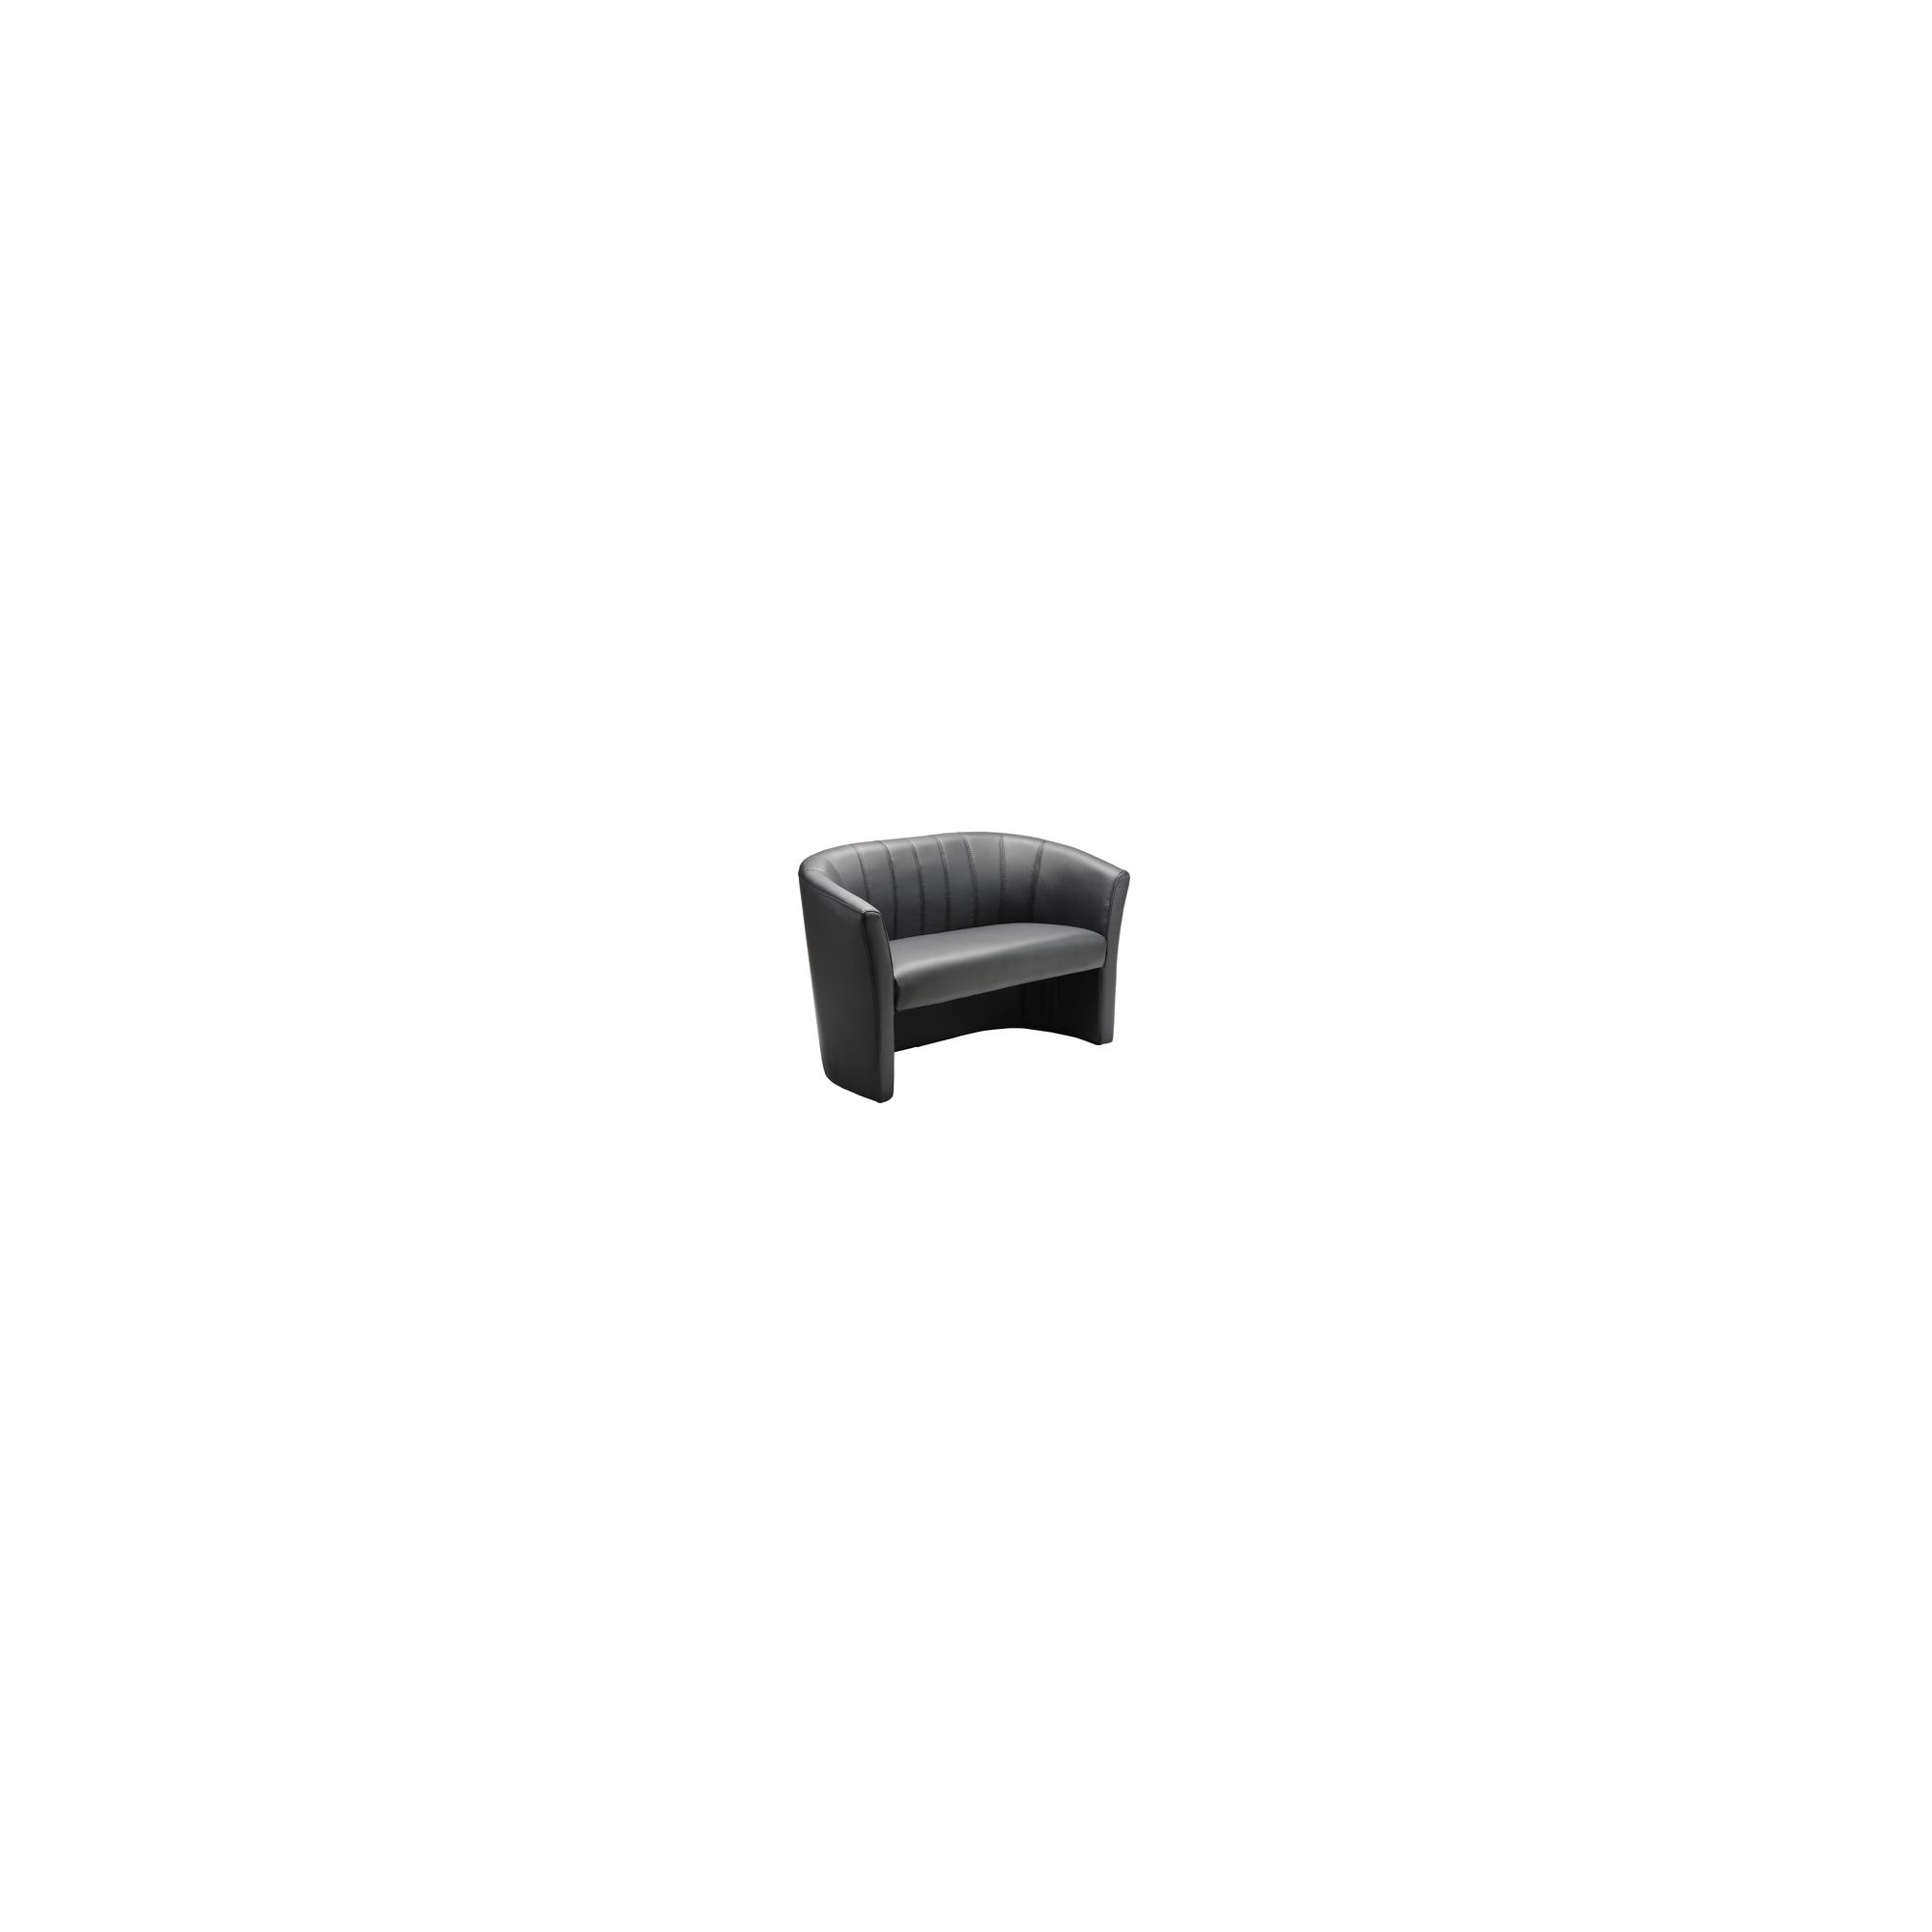 Tasha Creations Faux Bi-Cast Leather Two Seater Sofa in Black at Tesco Direct